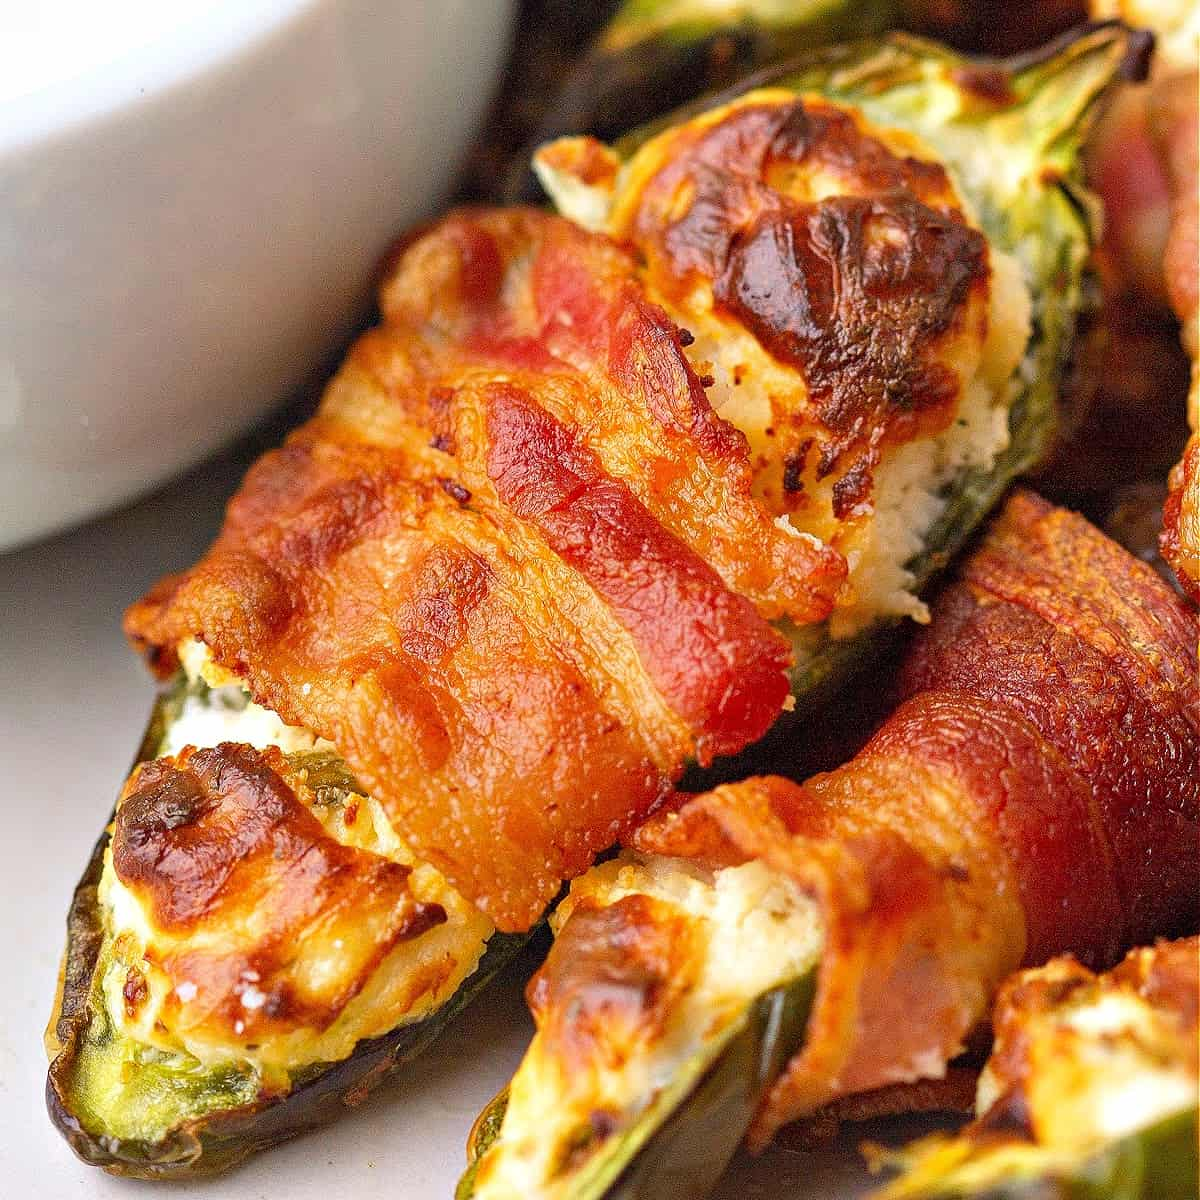 a close-up of a keto jalapeno popper on a plate